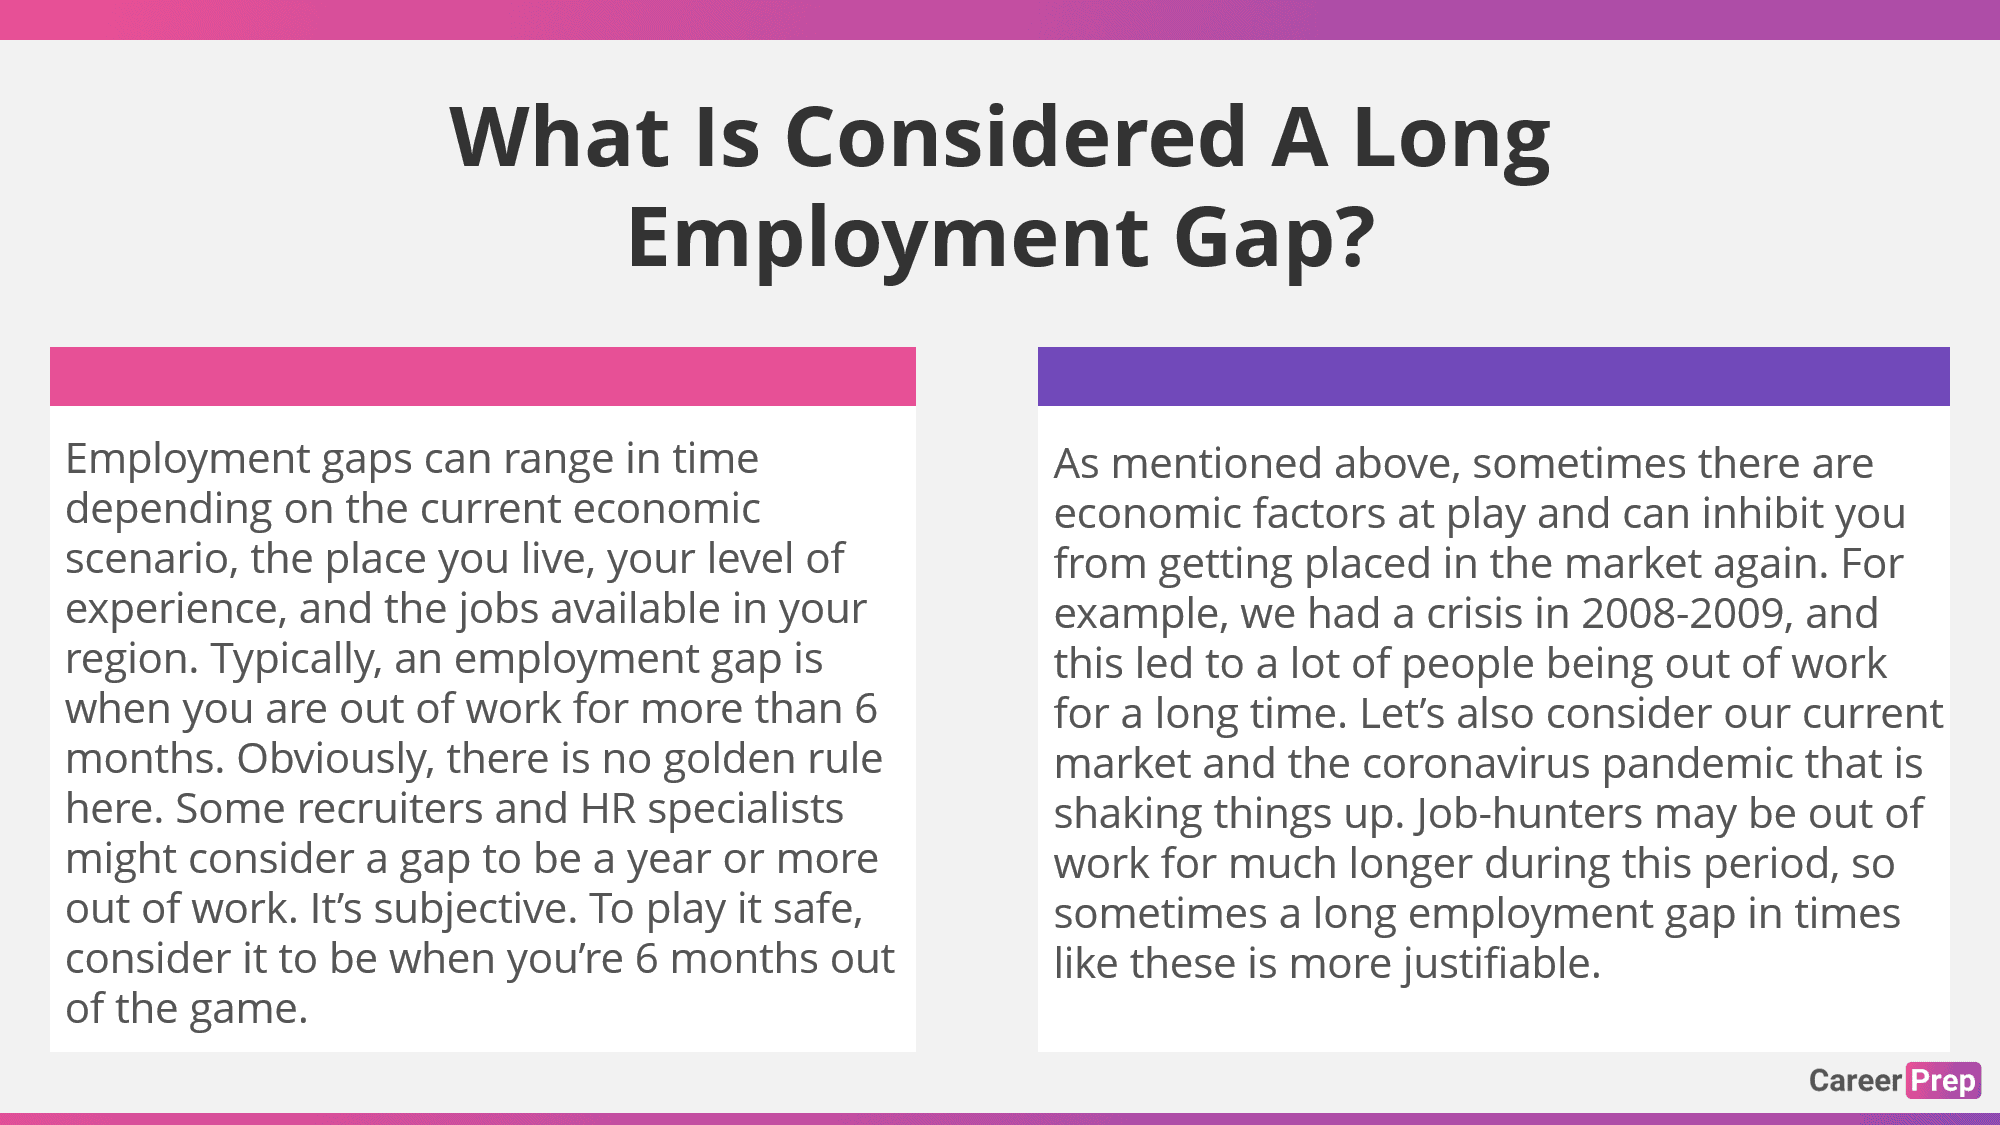 What Is Considered A Long Employment Gap